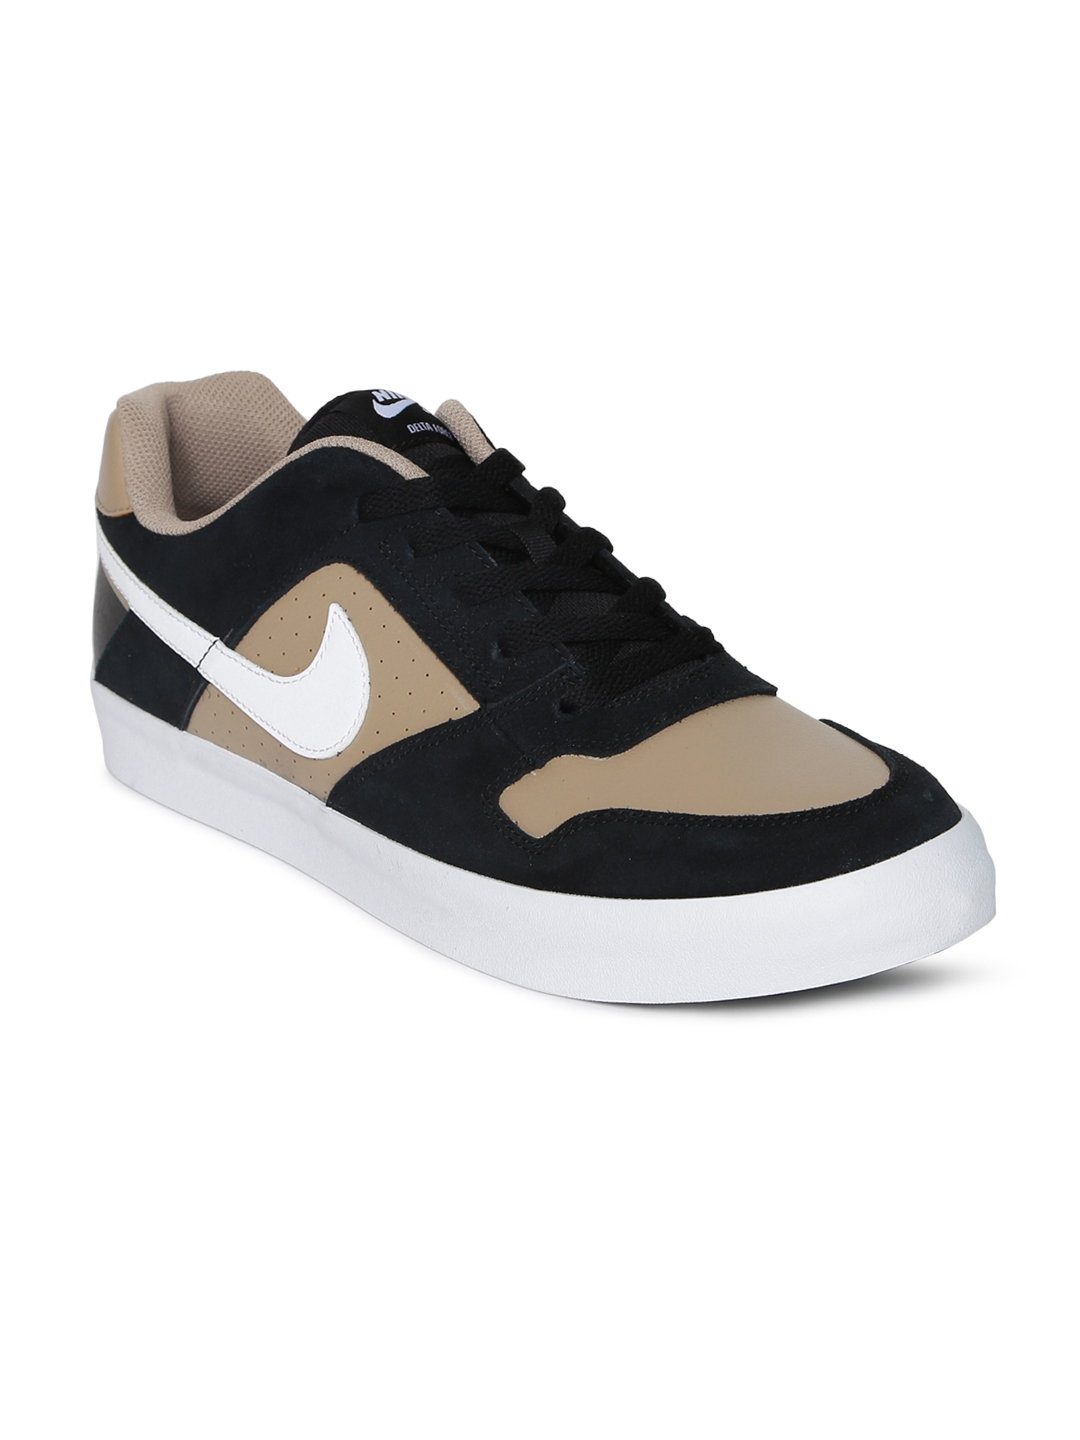 856950dad029 Buy Nike Men Black Delta Force Vulc Skateboarding Shoes - Sports ...